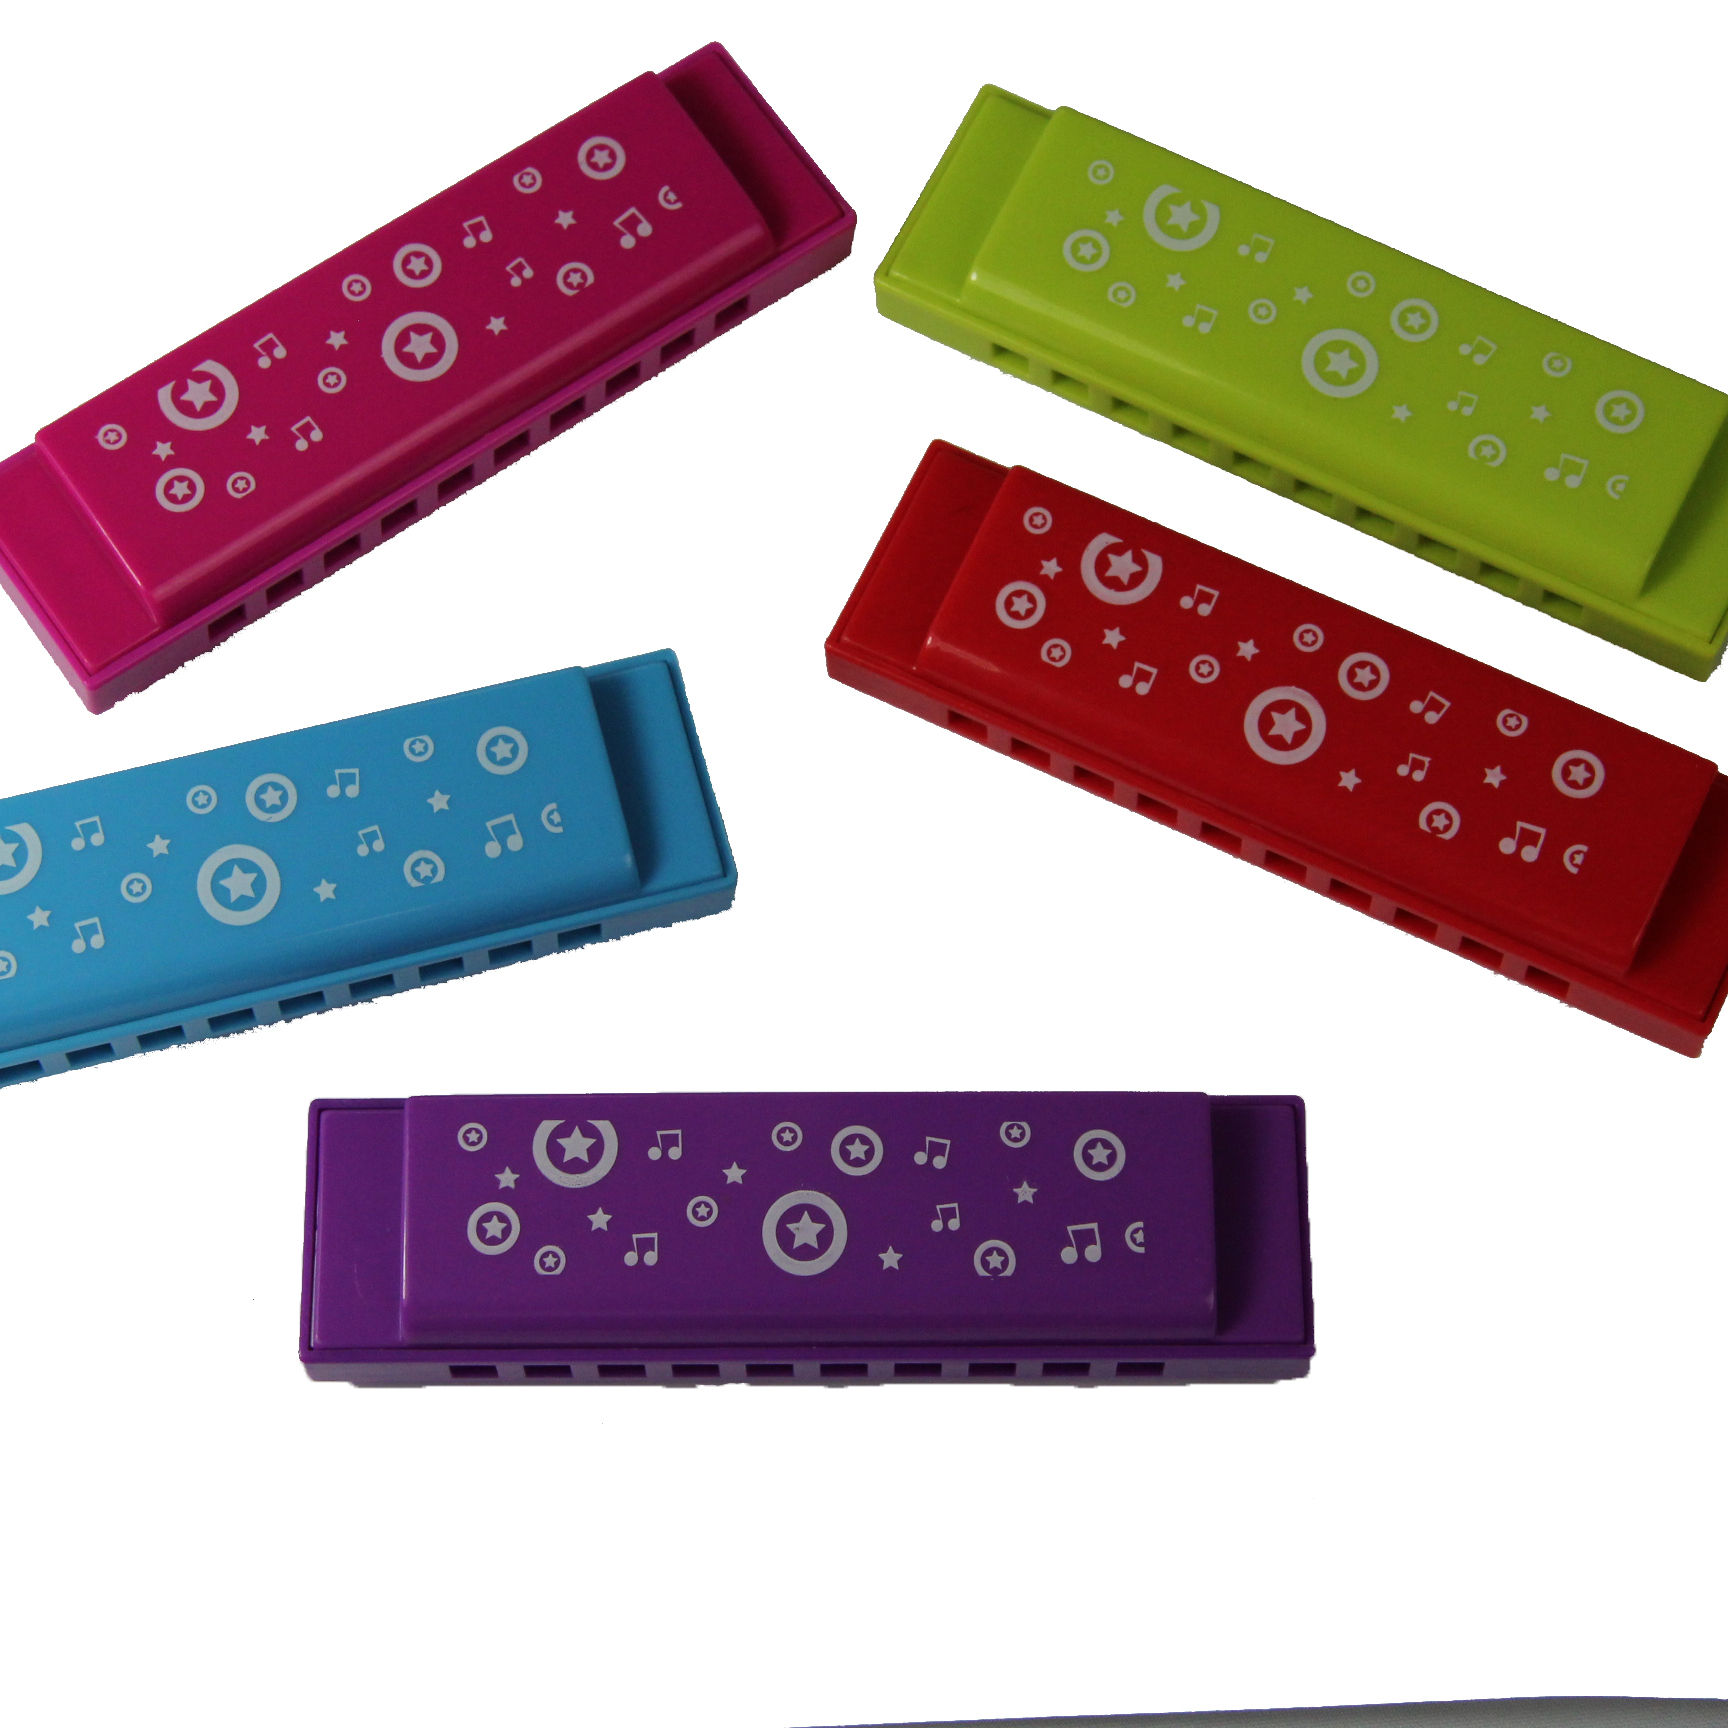 BEE brand 10 hole oem small gift toy plastic cover harmonica